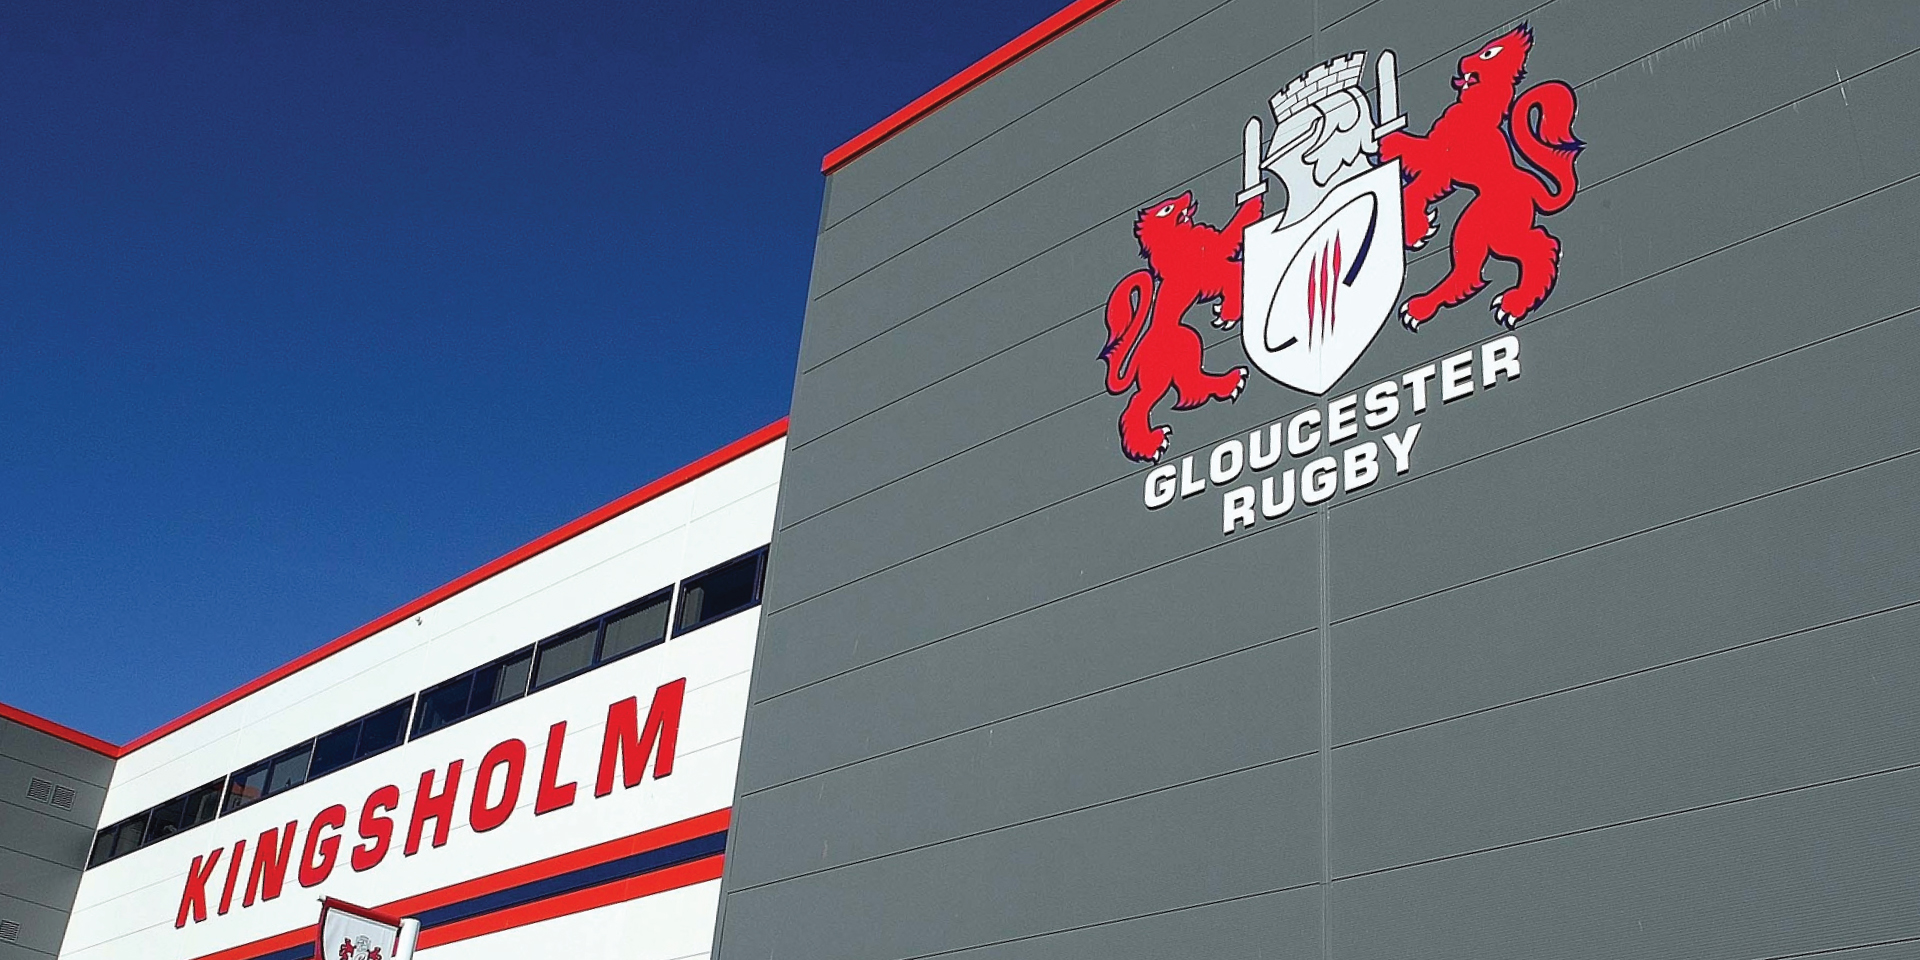 B009-2066-Gloucester-Rugby-case-study-Wide4.jpg